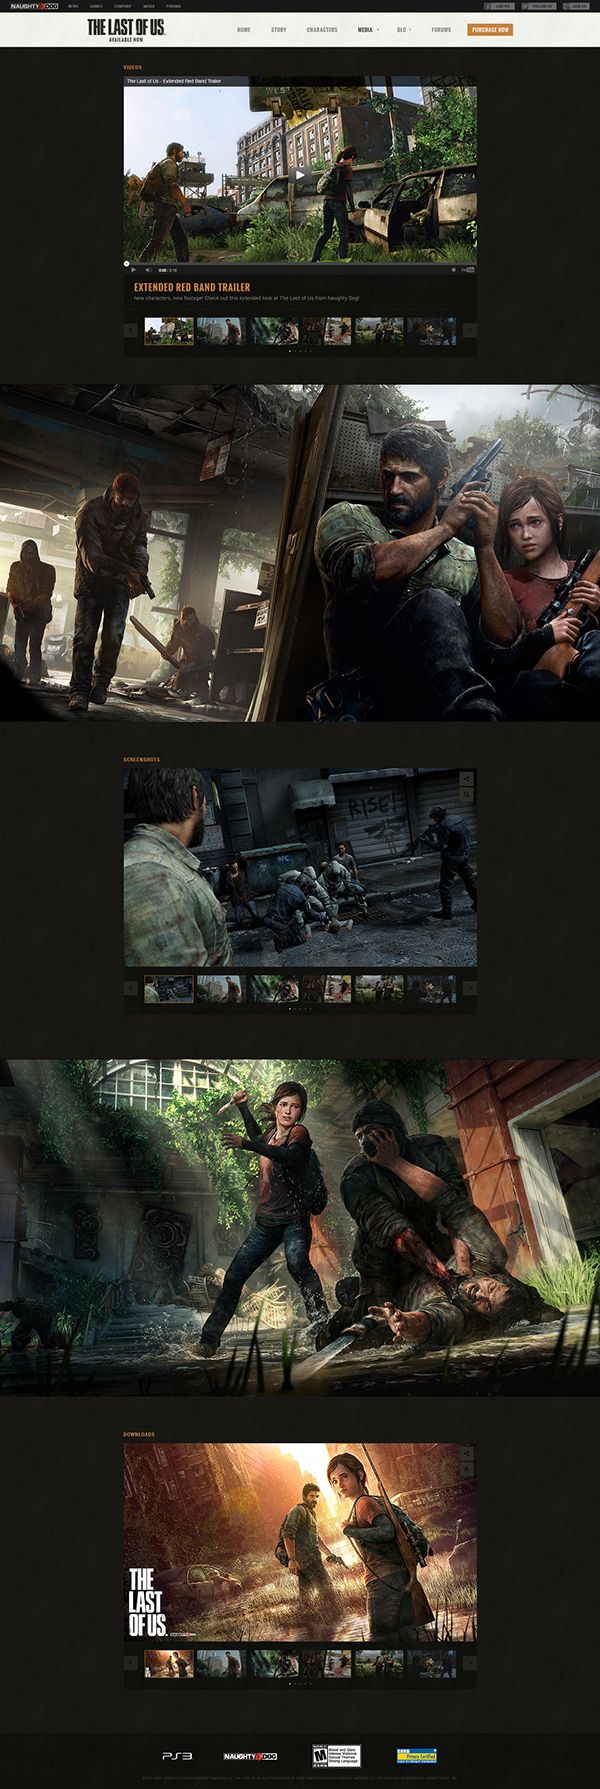 Naughty Dog approached Ignition Creative to create a fully responsive and dynamic HTML5 website for their latest tent pole game The Last of Us. The site designed to be a simple content first website while showcasing the beauty of the game. The whole site …